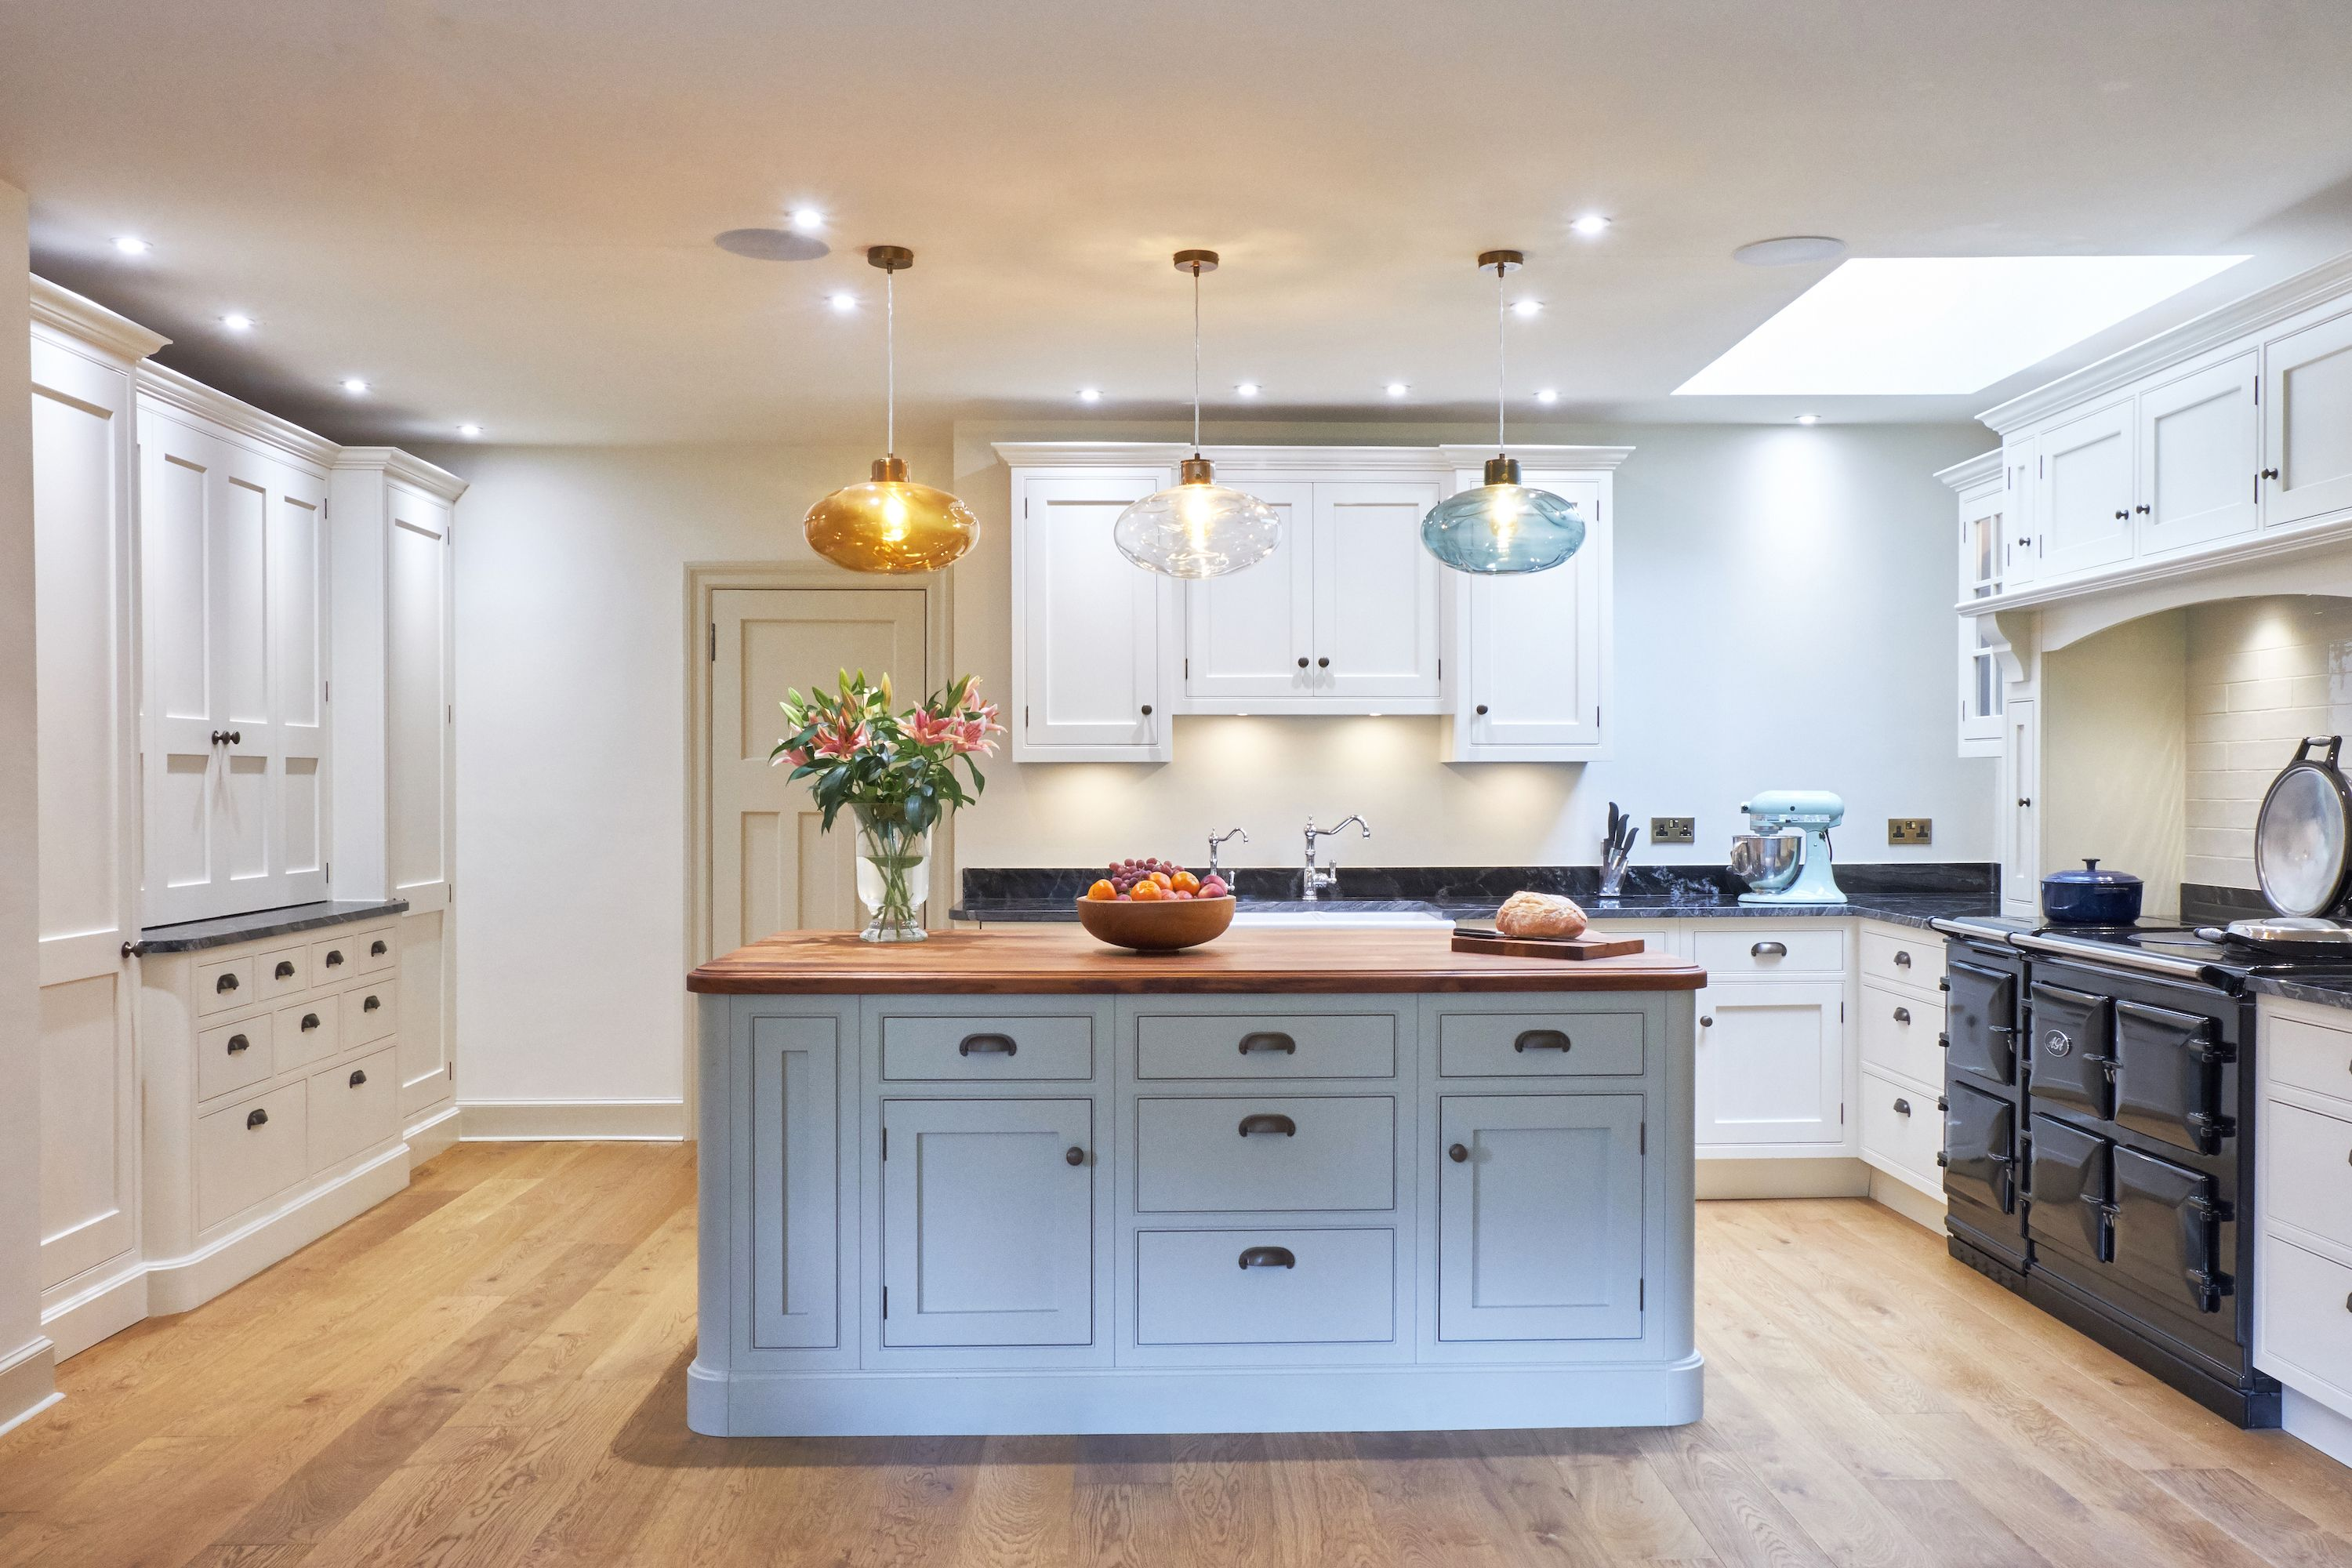 Bespoke Kitchen Remodel, Cream And Blue, Kitchen Island, Aga, Farrow And  Ball